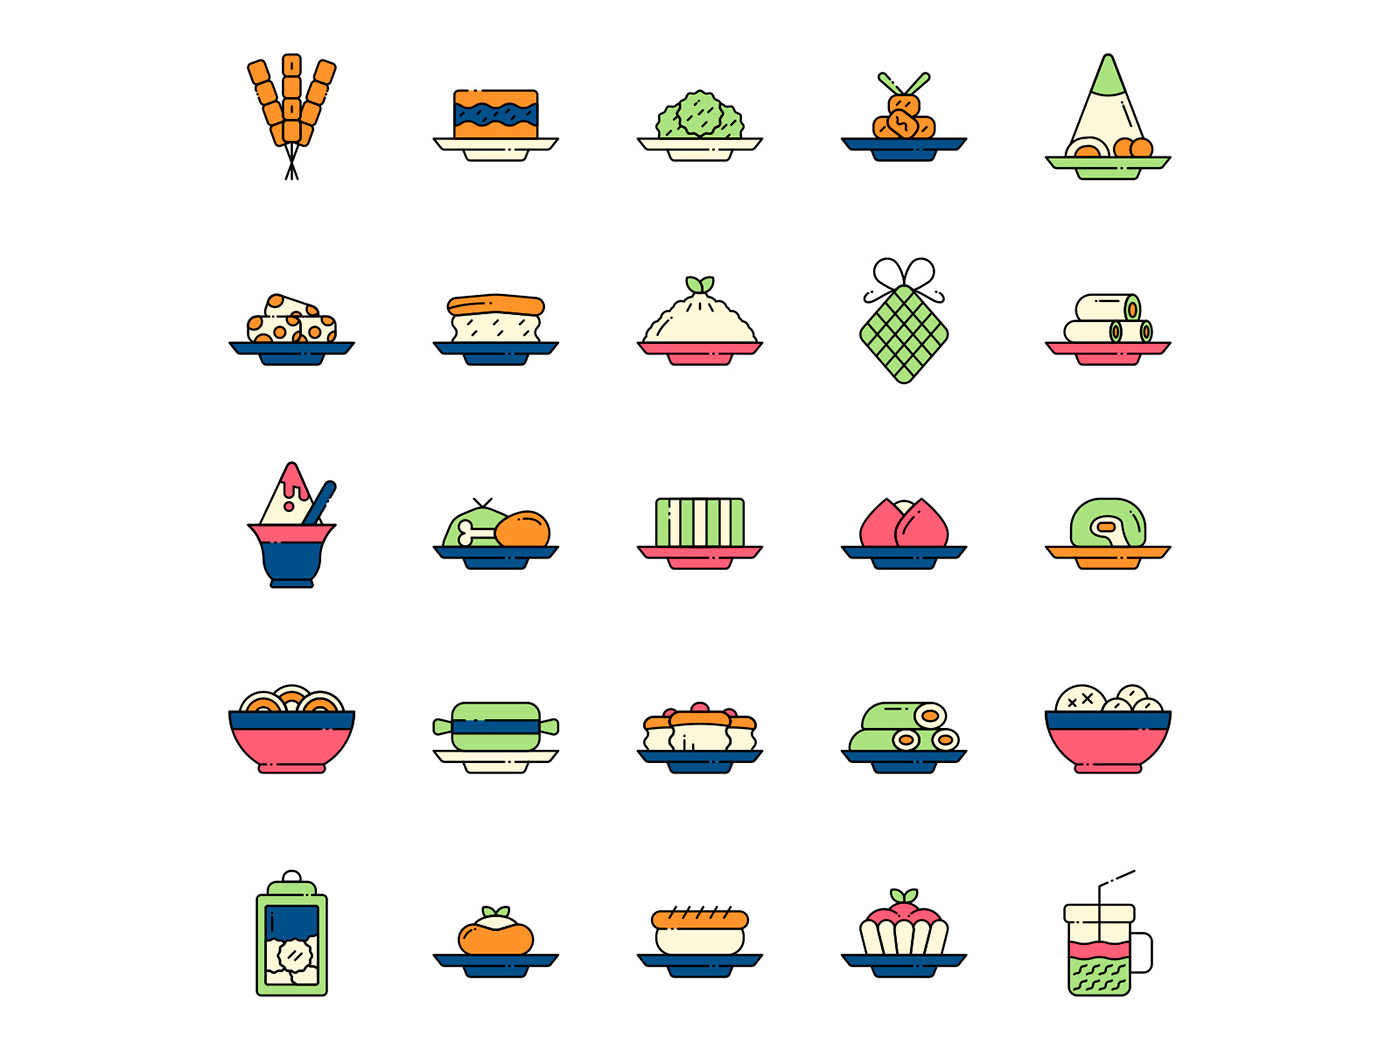 freebie icon design  icons download icons pack icons set indonesia icon  Indonesian food nutrition vector vector design vector icon